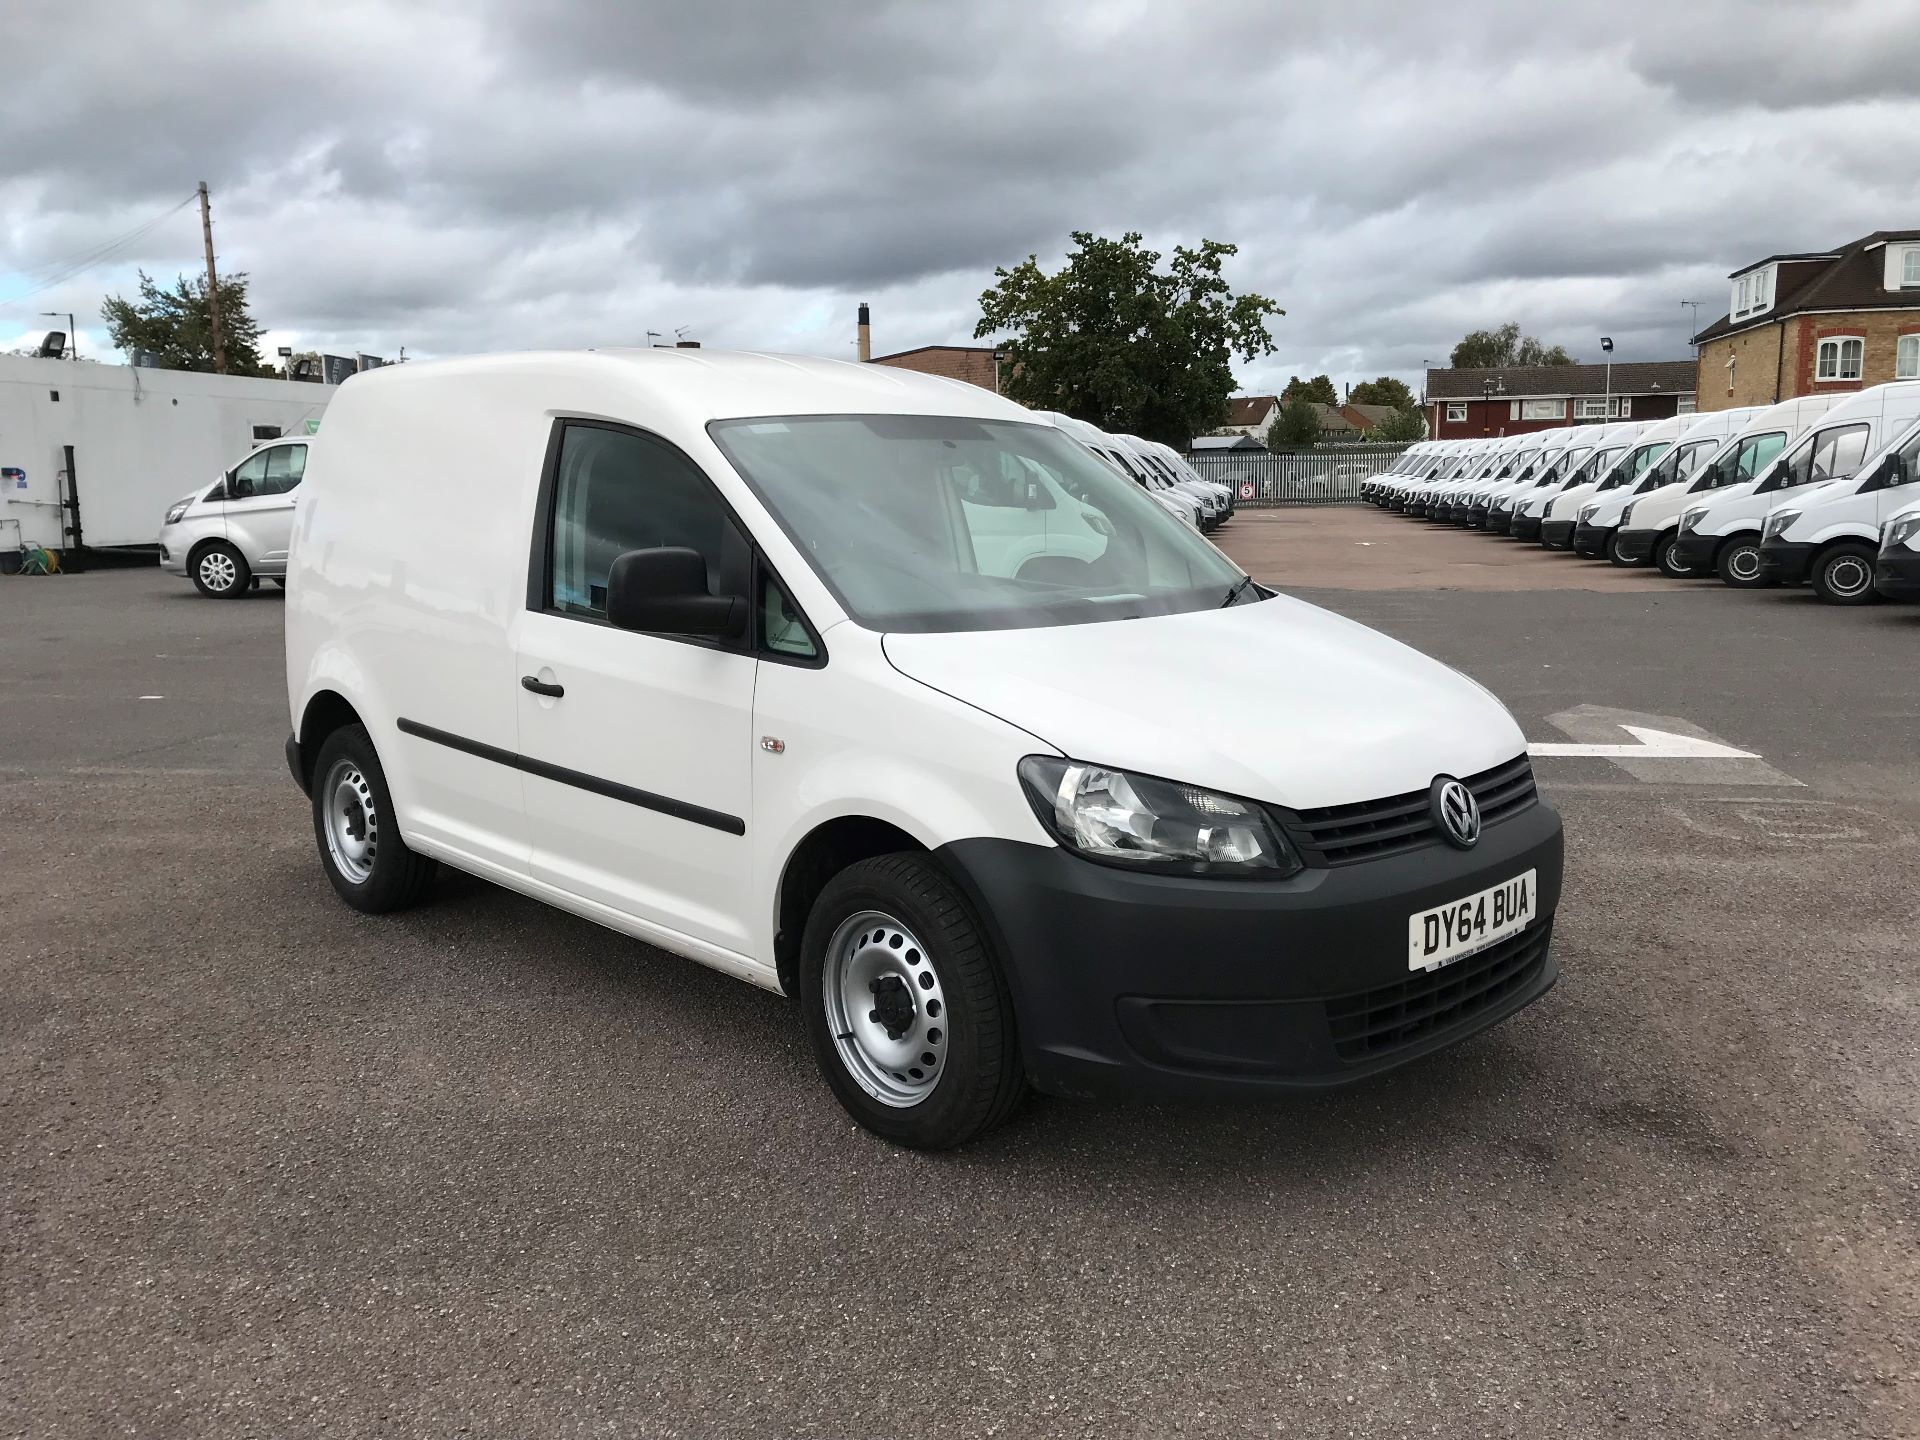 2014 Volkswagen Caddy   1.6 75PS   STARTLINE EURO 5 (DY64BUA)